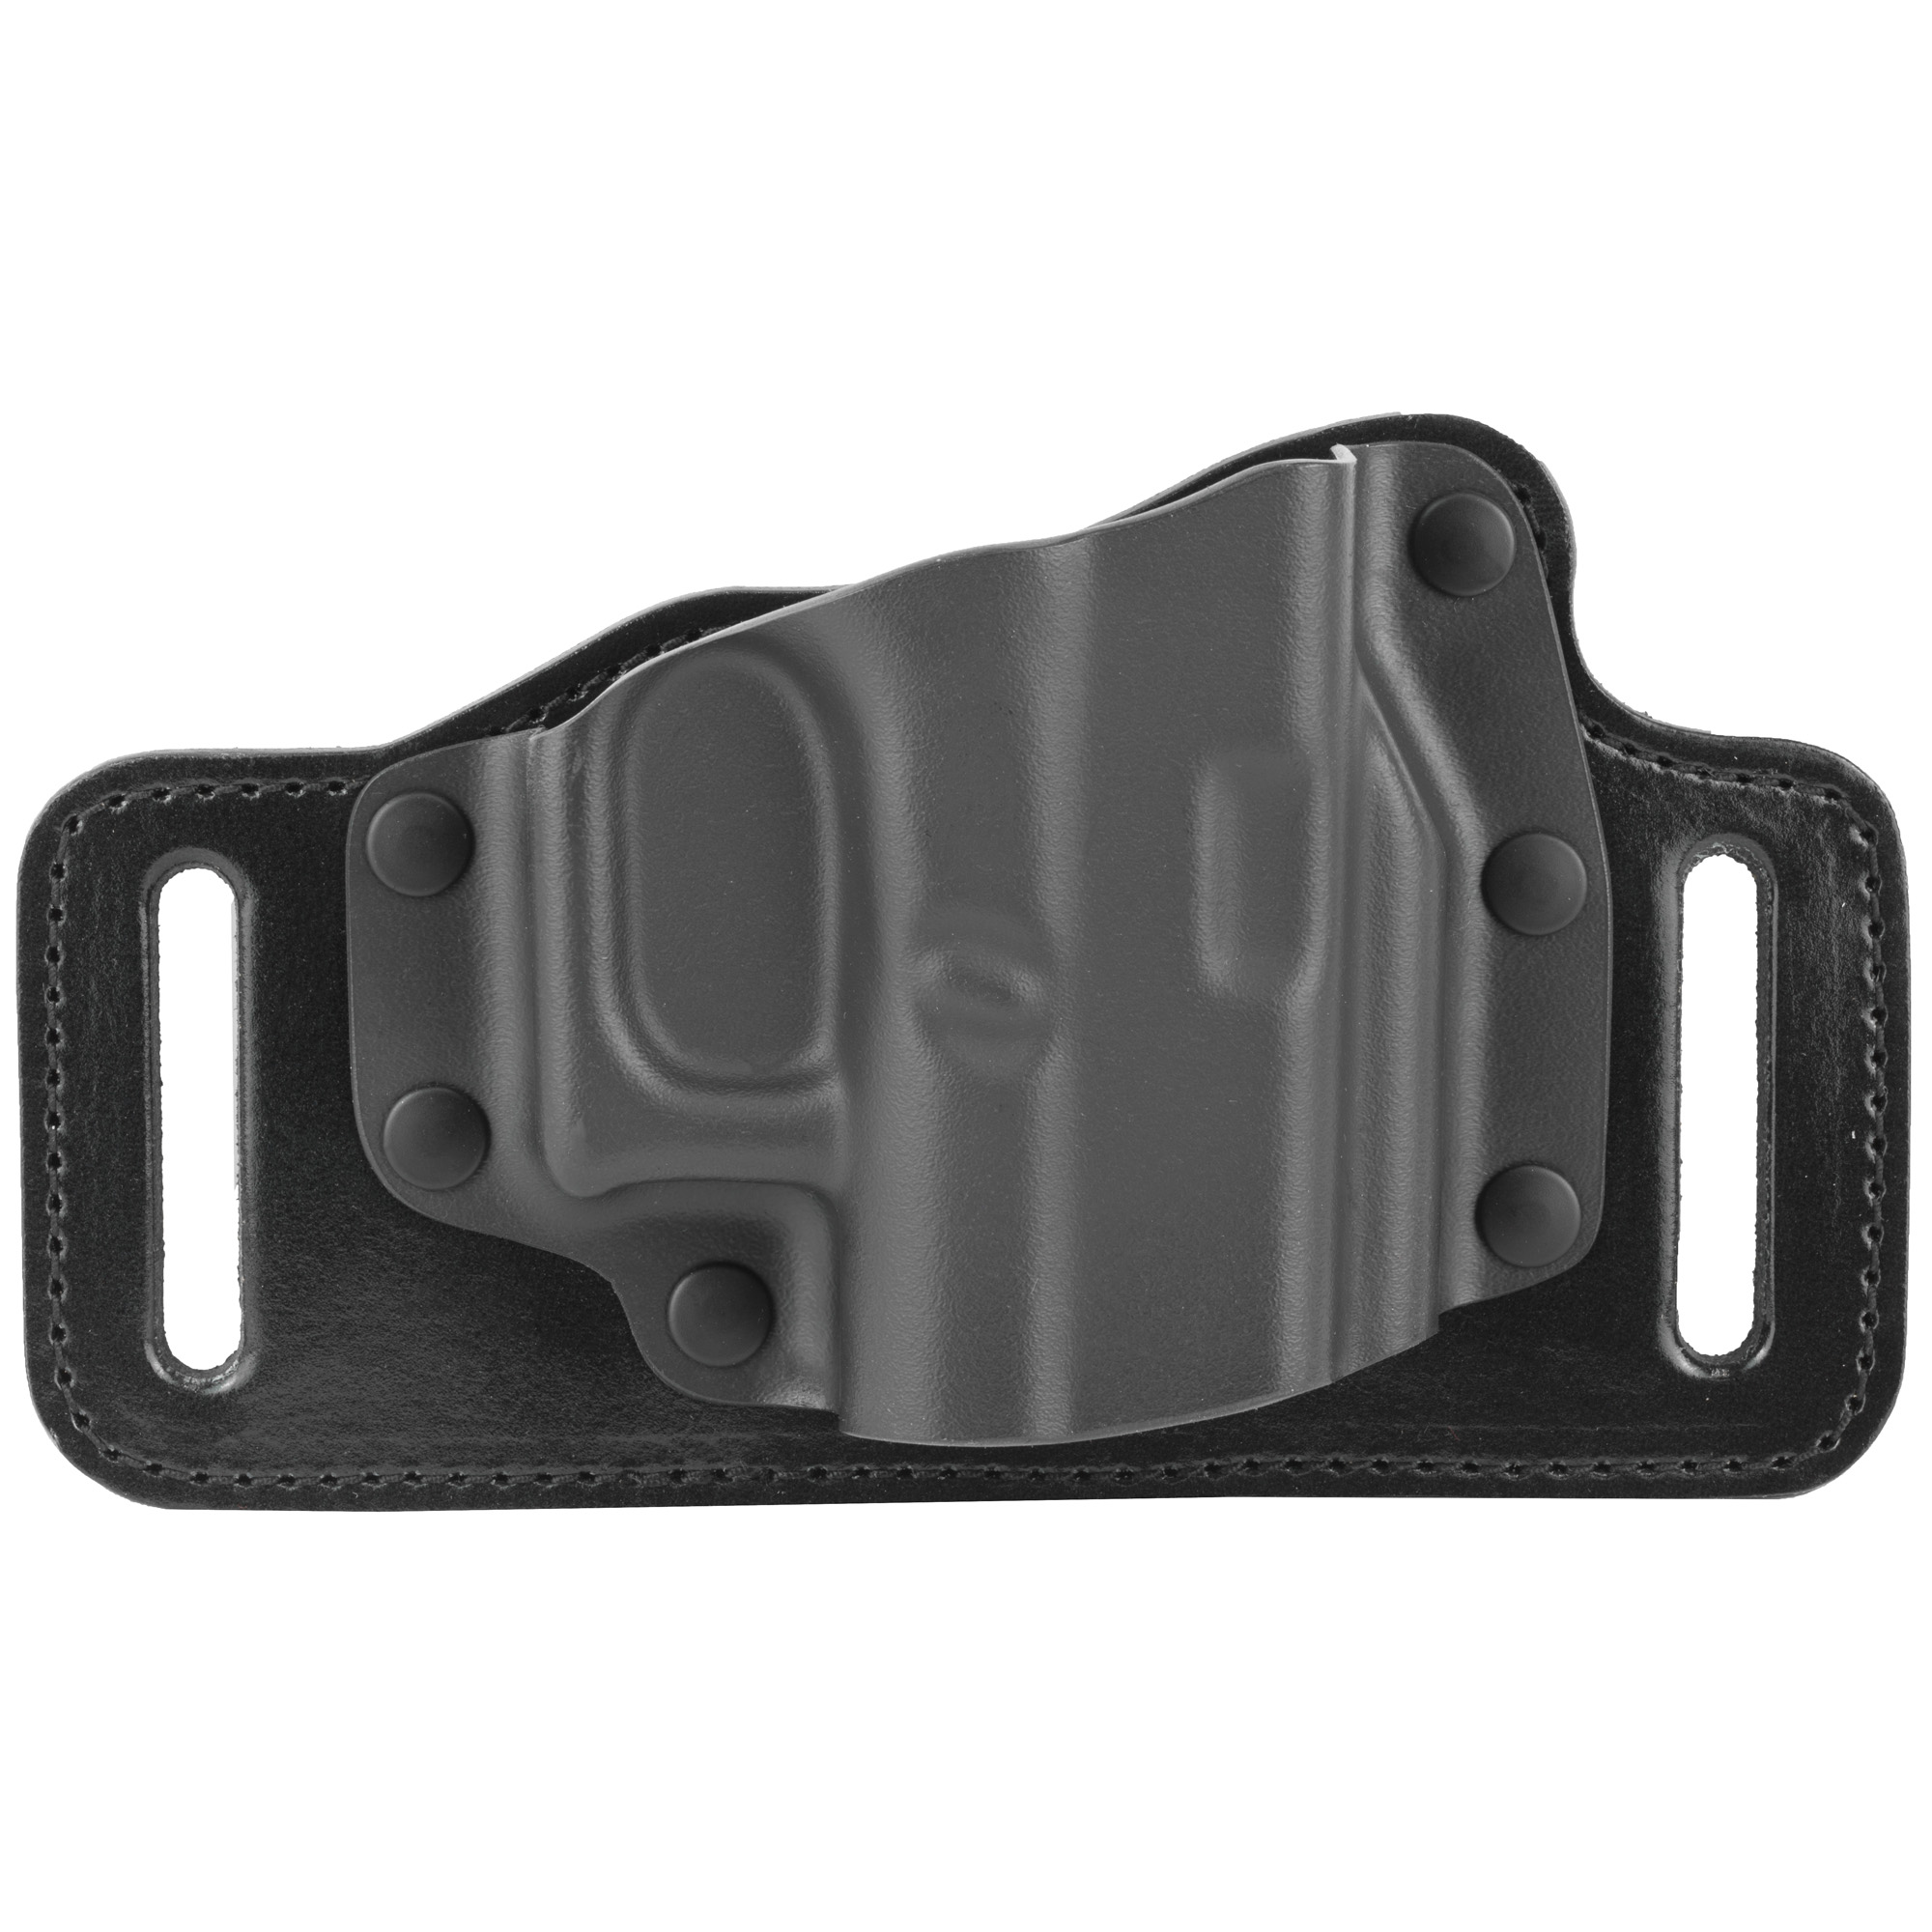 "Galco's TacSlide(TM) combines steerhide and Kydex(R) for a belt holster that is fast"" concealable"" and very economical! Following on the tremendous success of the hybrid KingTuk(TM) IWB"" the TacSlide mates a Kydex holster pocket to a slotted steerhide backplate. An open top and near-neutral cant make the draw fast and simple. The wide spacing of the 1 3/4"" belt slots pulls the handgun in tight to the body for excellent concealment. The TacSlide's silhouetted"" belt-slide design accommodates multiple barrel lengths on the same basic frame size while simultaneously minimizing overall bulk. The steerhide backplate is smooth where it rides against the wearer's body"" greatly increasing comfort. The TacSlide is currently offered for popular semiautos and double-action revolvers."